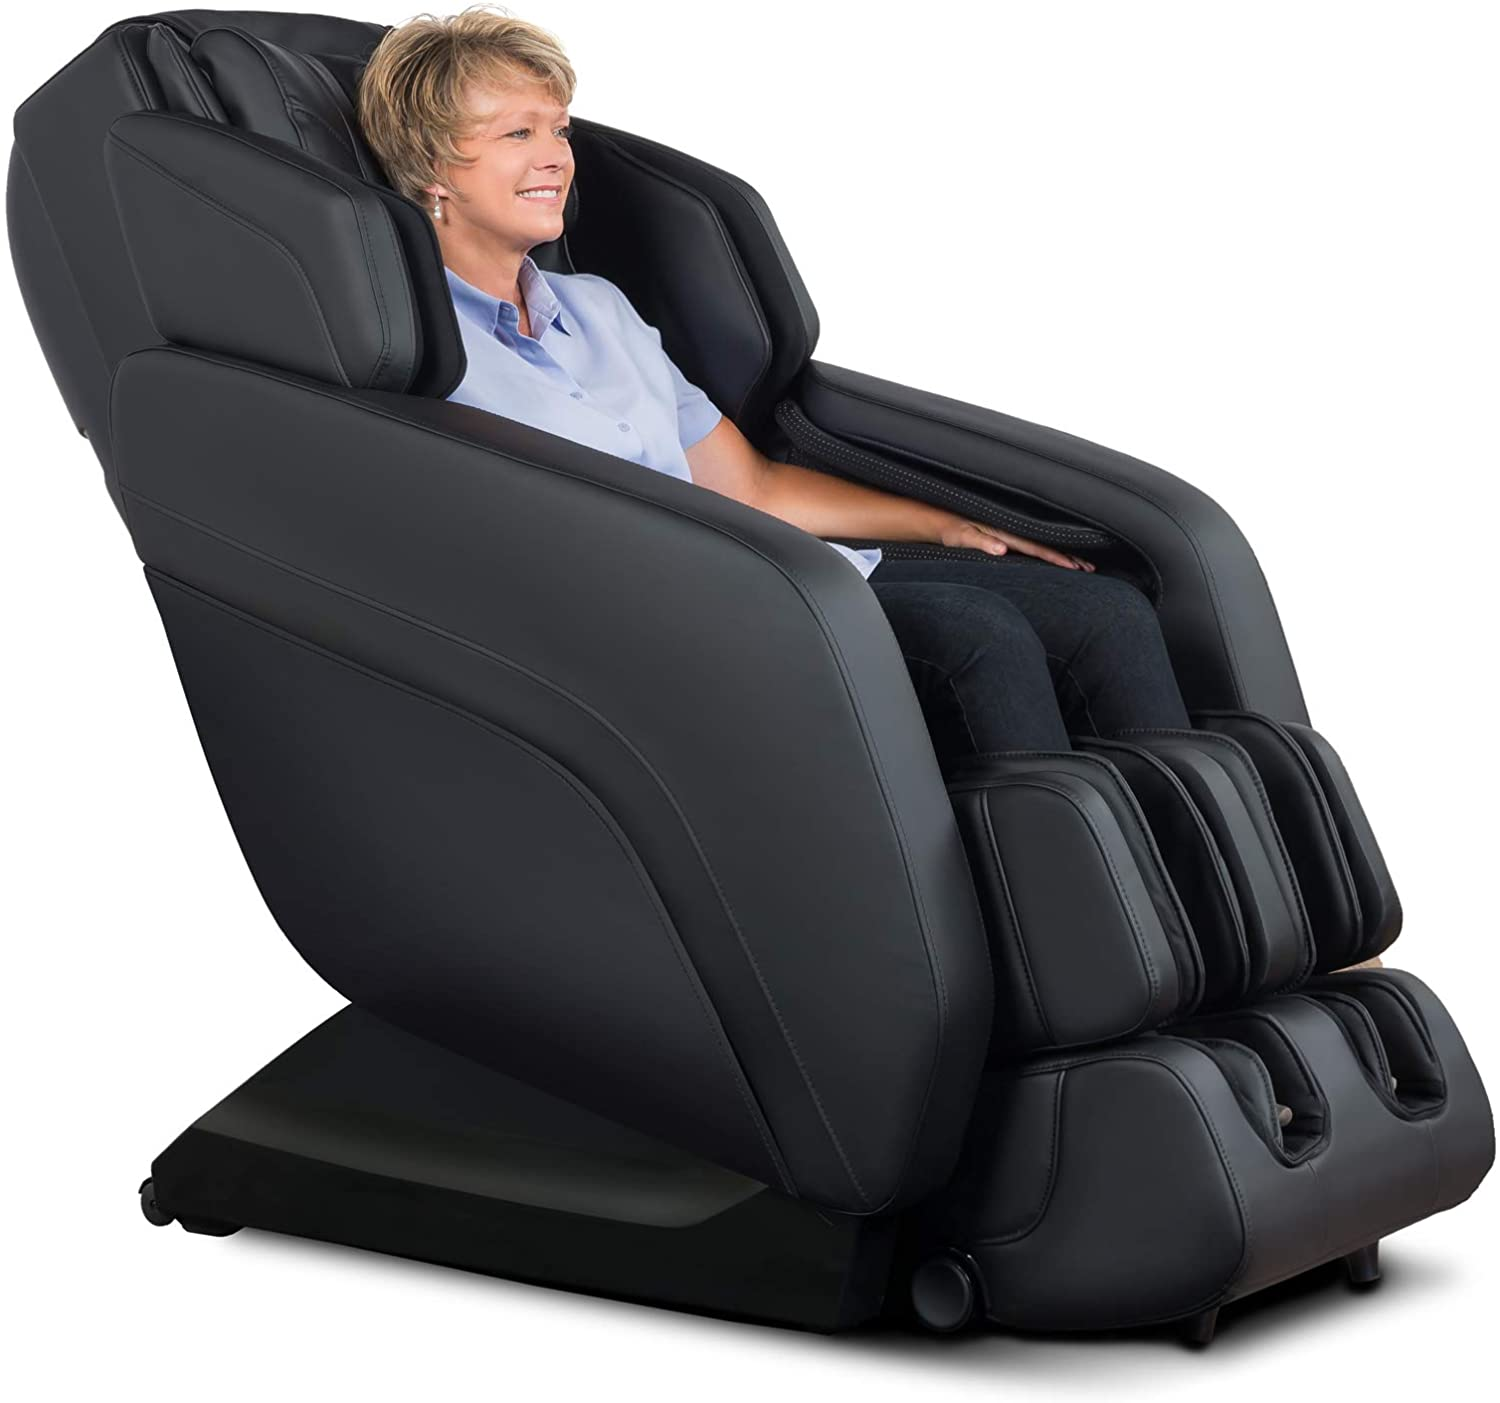 RELAXONCHAIR [MK-V Plus] Full Body Zero Gravity Shiatsu Massage Chair with Built-in Heat and Air Massage System (Black)